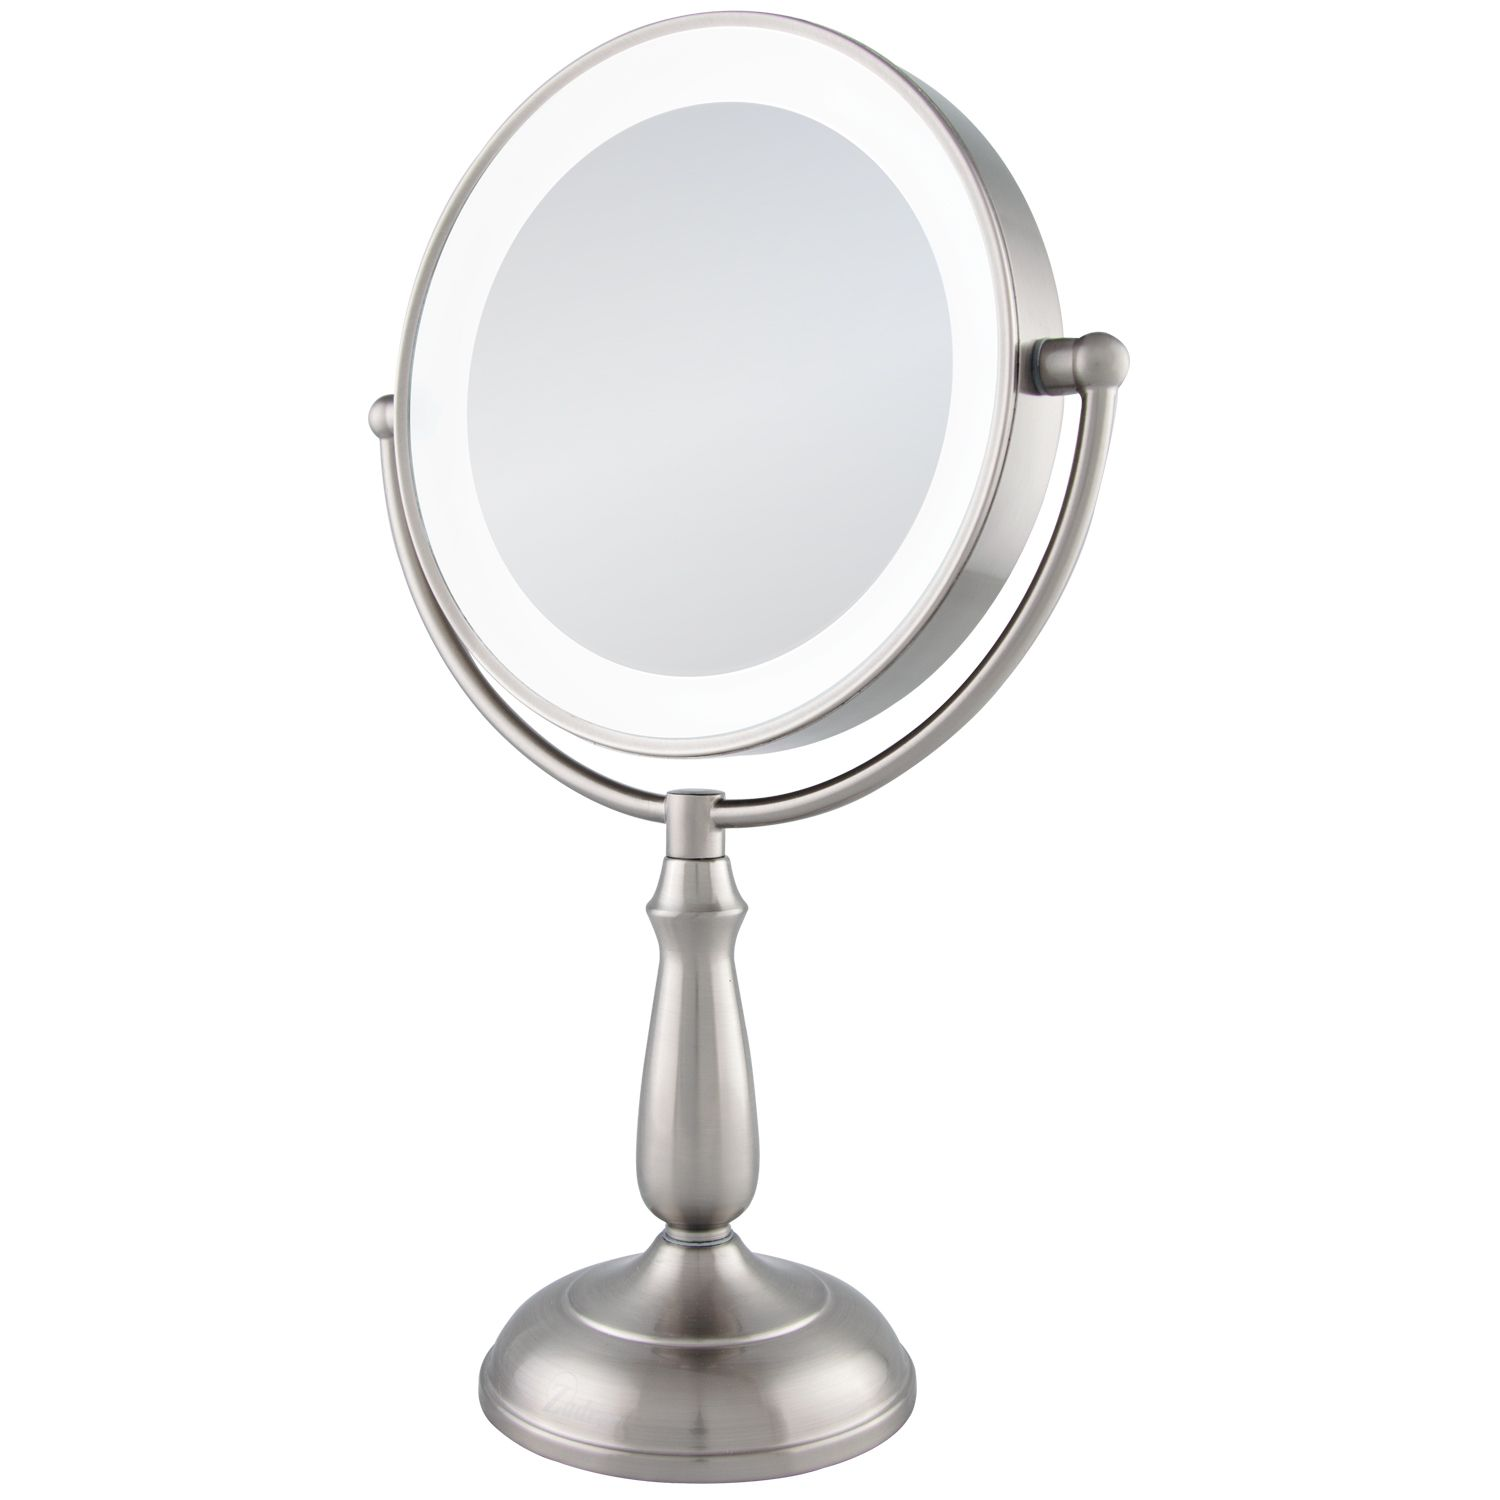 Zadro LEDVPRT410 10X/1X Satin Nickel Ultra Bright LED Lighted Touch Vanity Mirror at Sears.com